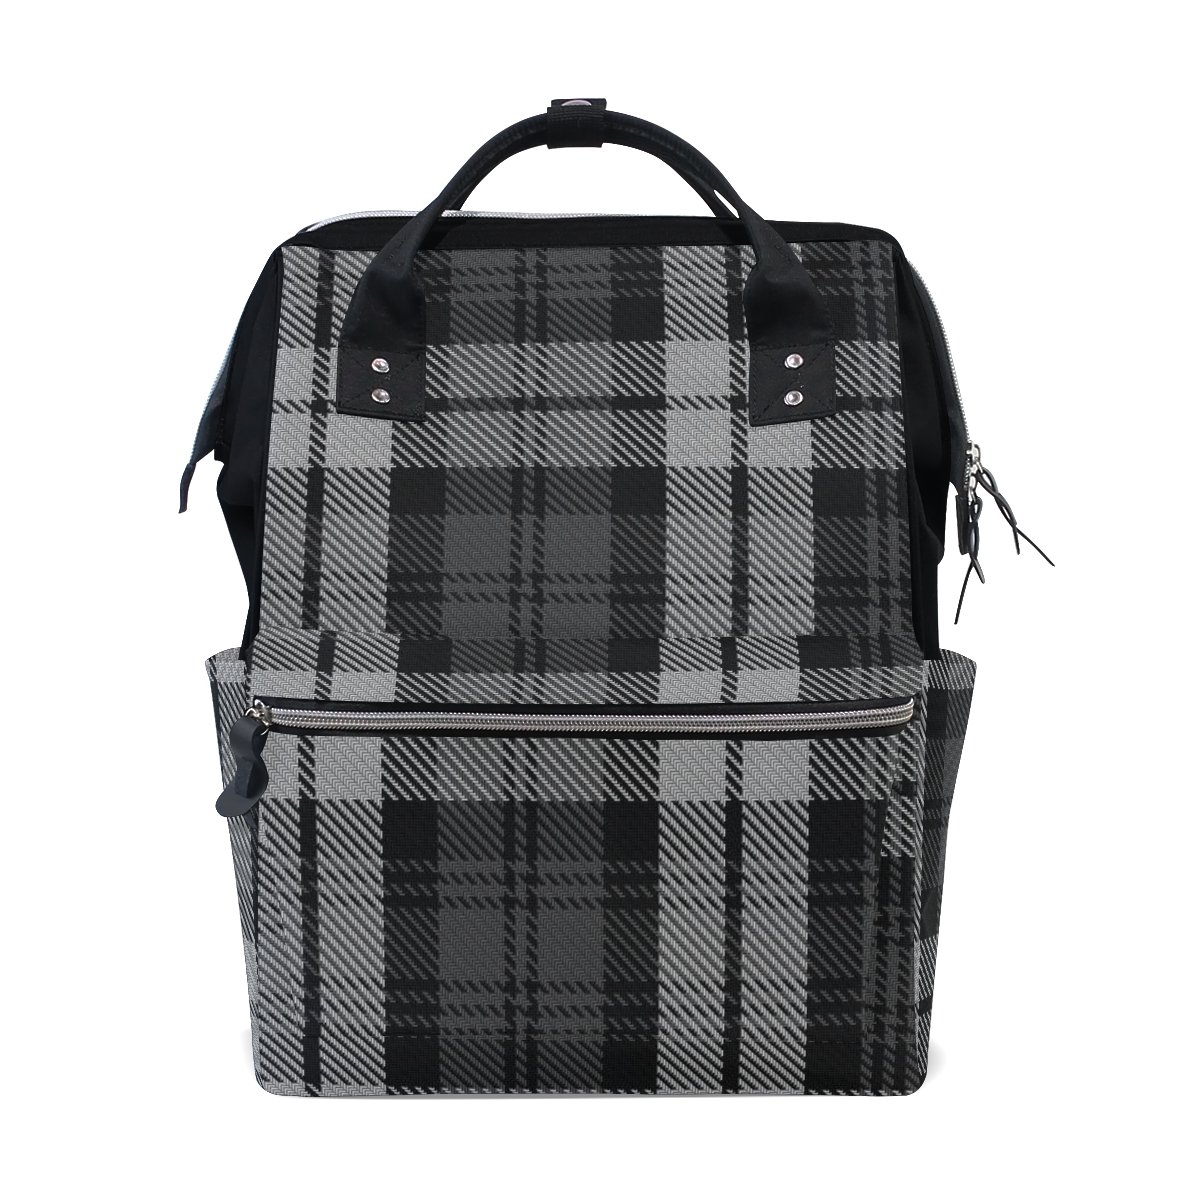 Diaper Bags Backpack Purse Mummy Backpack Fashion Mummy Maternity Nappy Bag Cool Cute Travel Backpack Laptop Backpack with Black And Gray Plaid Pattern Daypack for Women Girls Kids by THENAGD